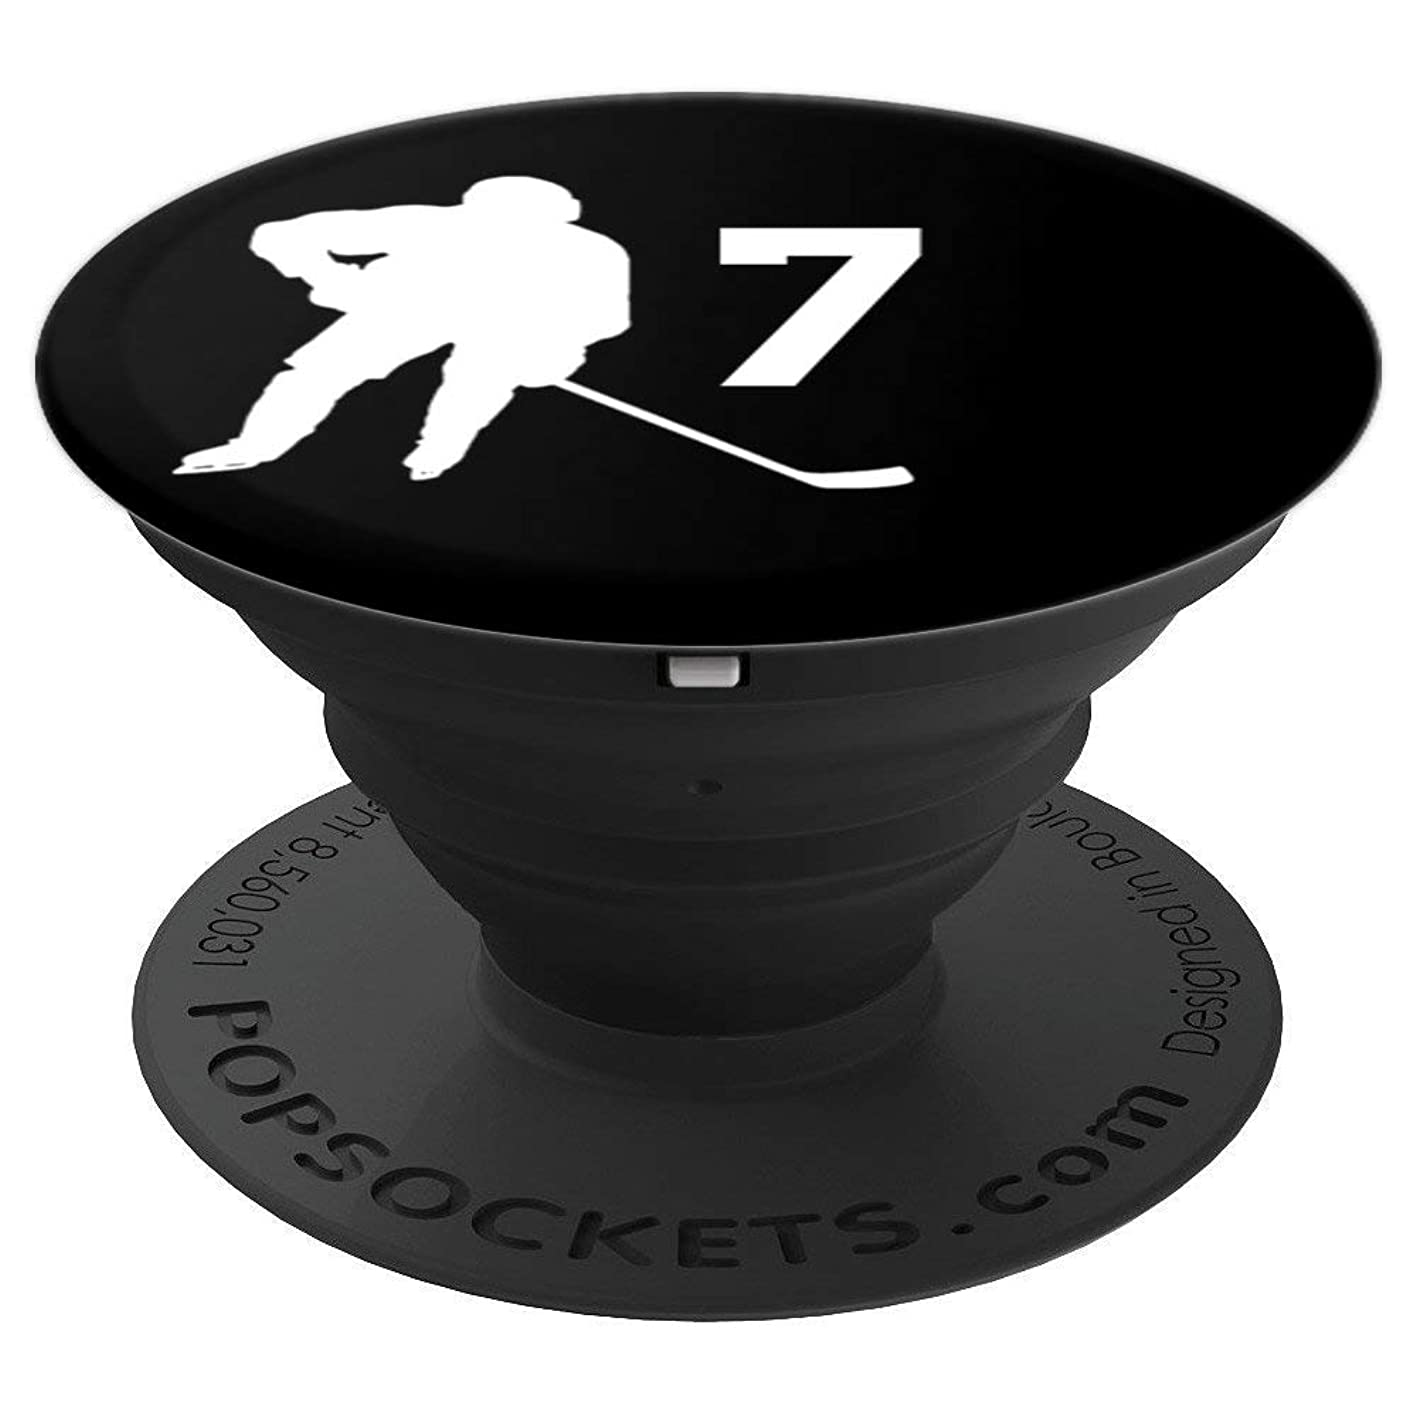 Number 7 , #7, Hockey Gifts for Men, Boys, Teens, Women, - PopSockets Grip and Stand for Phones and Tablets fcqfvbkbmhg879